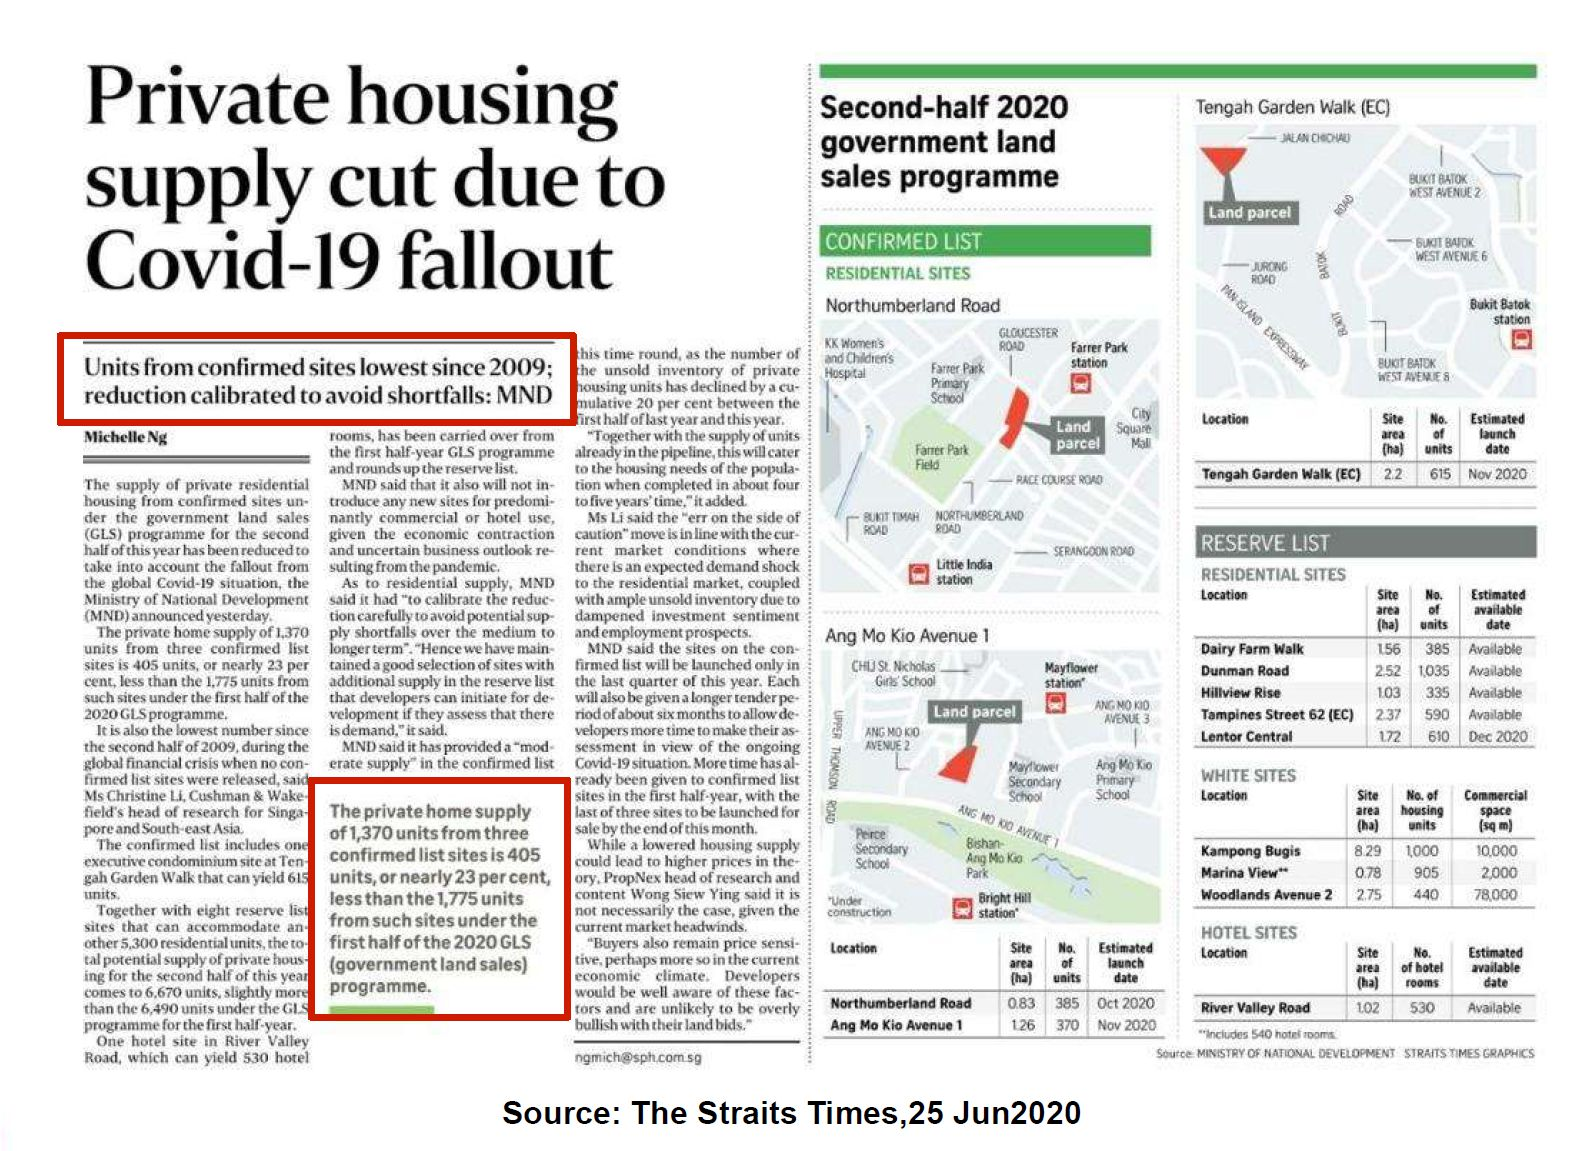 Private Housing Supply Cut Due to